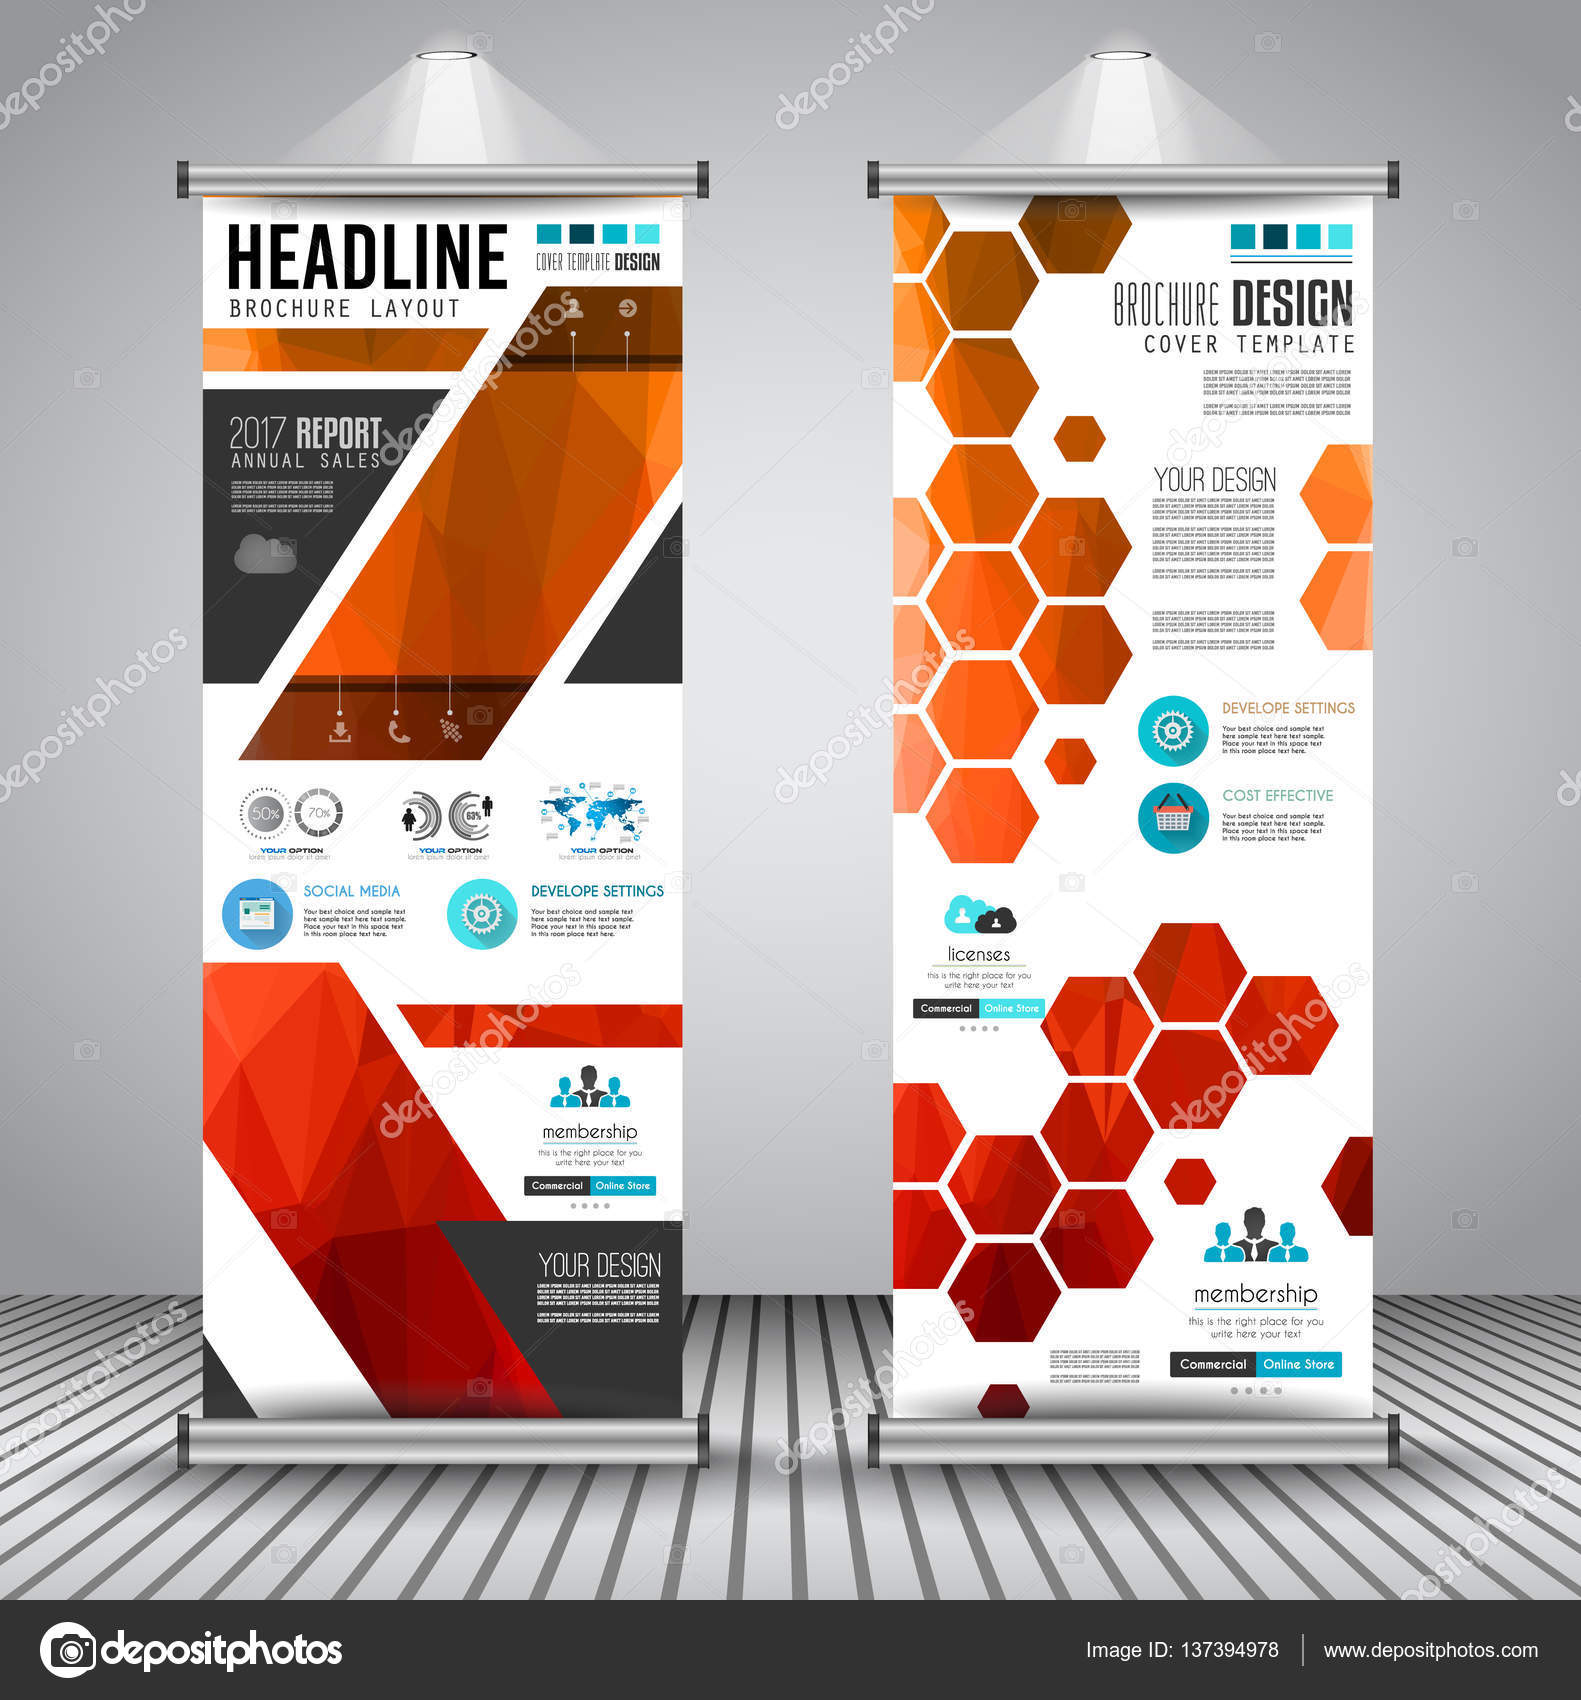 advertisement roll up business flyers stock vector © davidarts advertisement roll up business flyers or banners vertical design vector template for cover presentation geometrical shape background